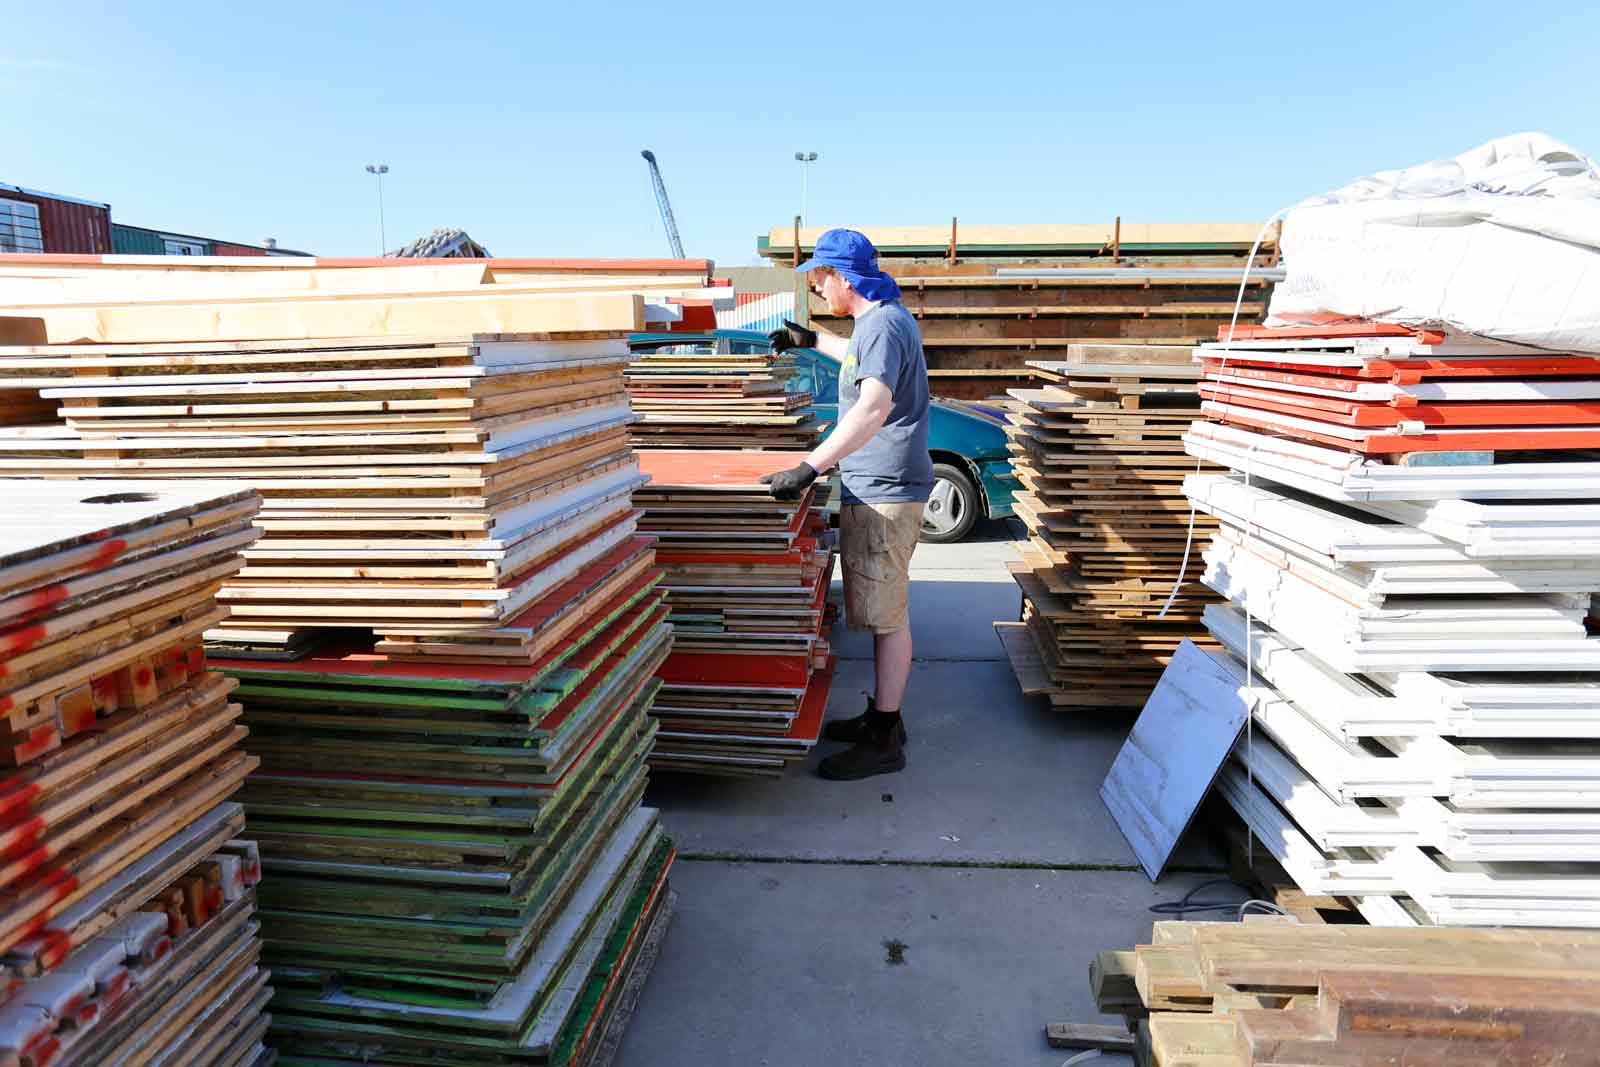 photograph of a builder with a blue hat on standing next to stacks of reclaimed wood for Treehouse NDSM